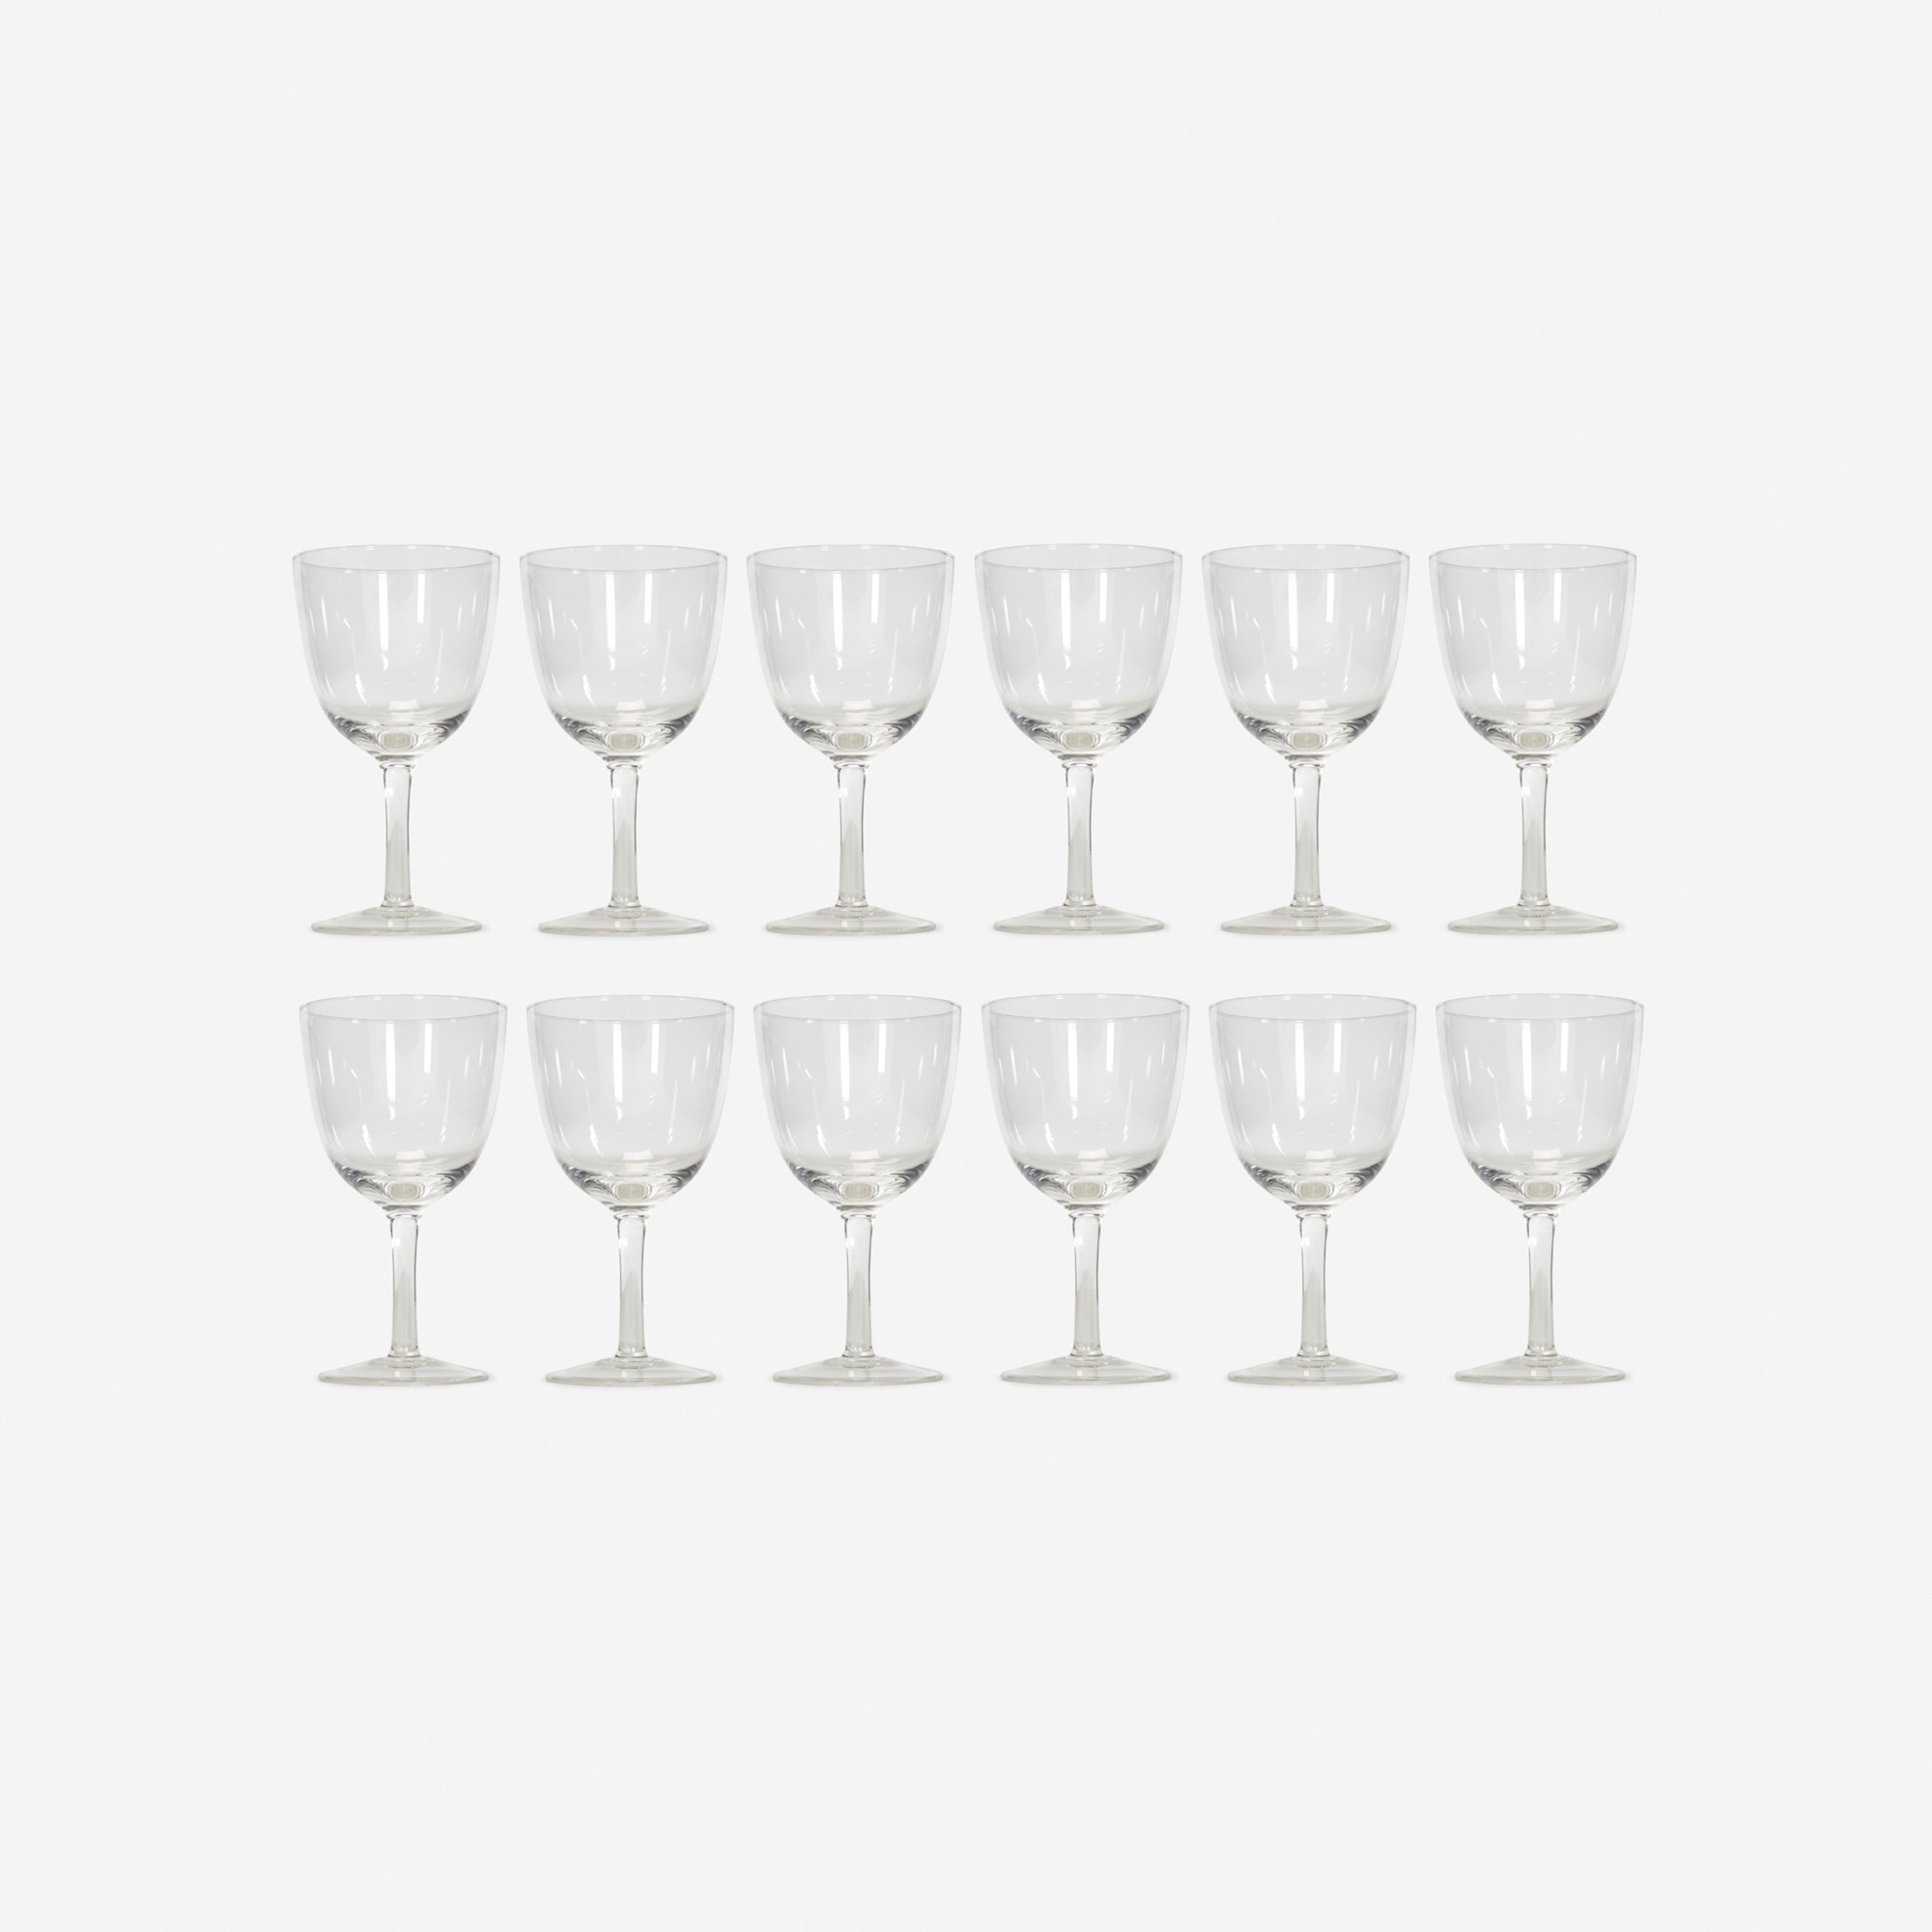 446: Garth and Ada Louise Huxtable / Water glasses from The Four Seasons, set of twelve (1 of 1)